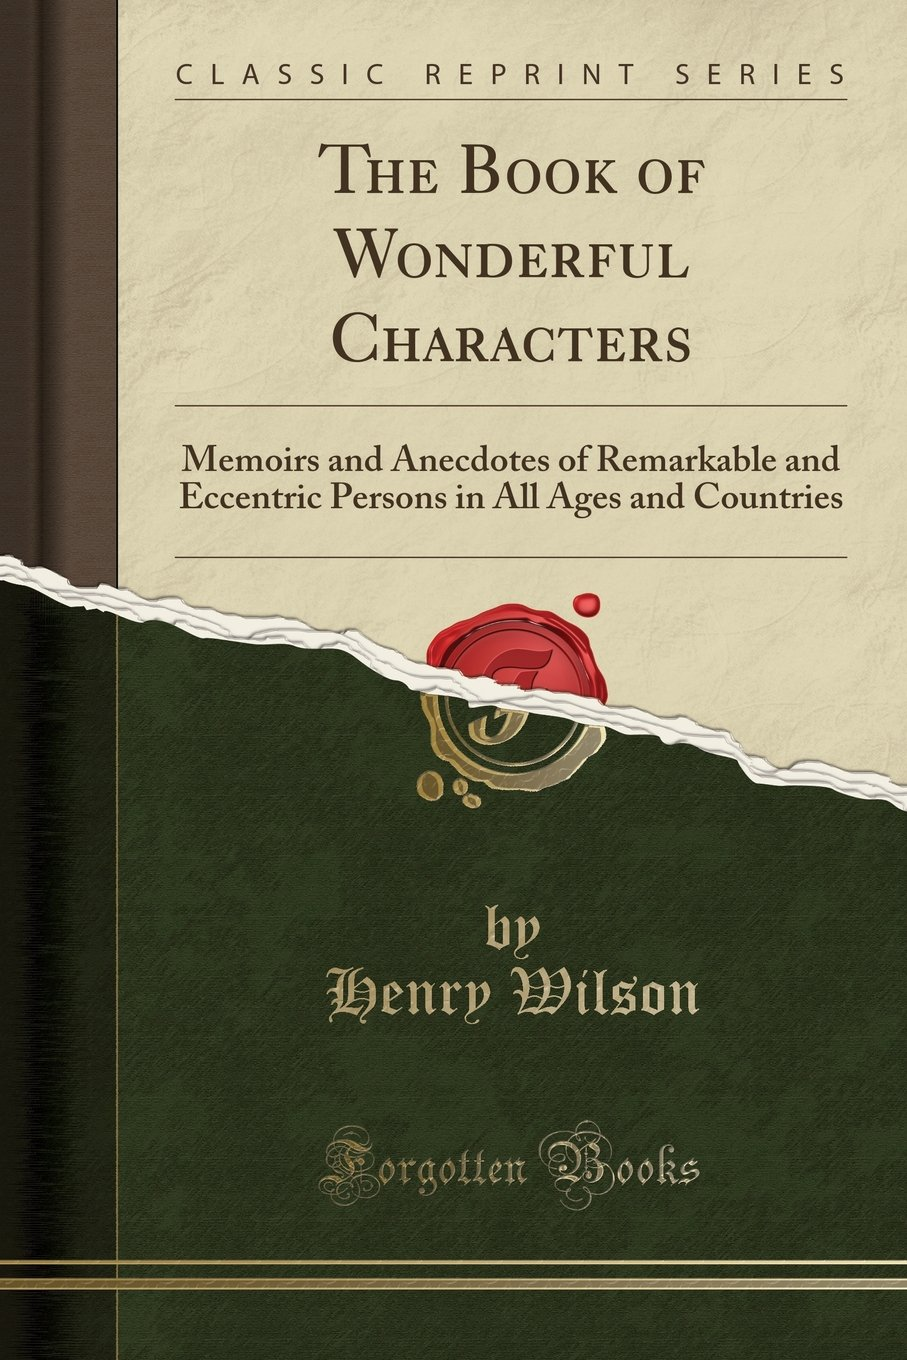 The Book Of Wonderful Characters: Memoirs And Anecdotes Of Remarkable And  Eccentric Persons In All Ages And Countries (classic Reprint): Henry Wilson: